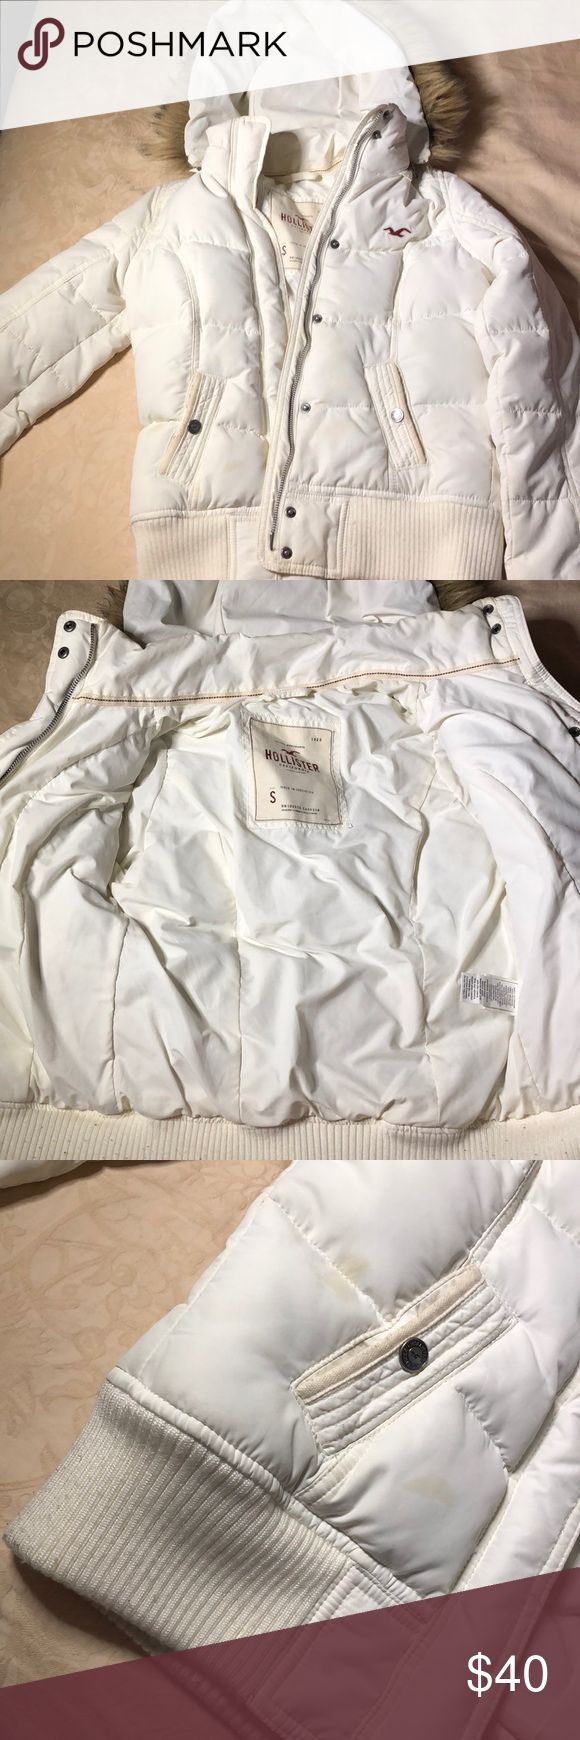 Off White Hollister Jacket Not too puffy so it fits stylish. Detachable hood. Perfect for the snow! A quick stop at the cleaners and it'll be good as new! New, only worn 2x. Hollister Jackets & Coats Puffers